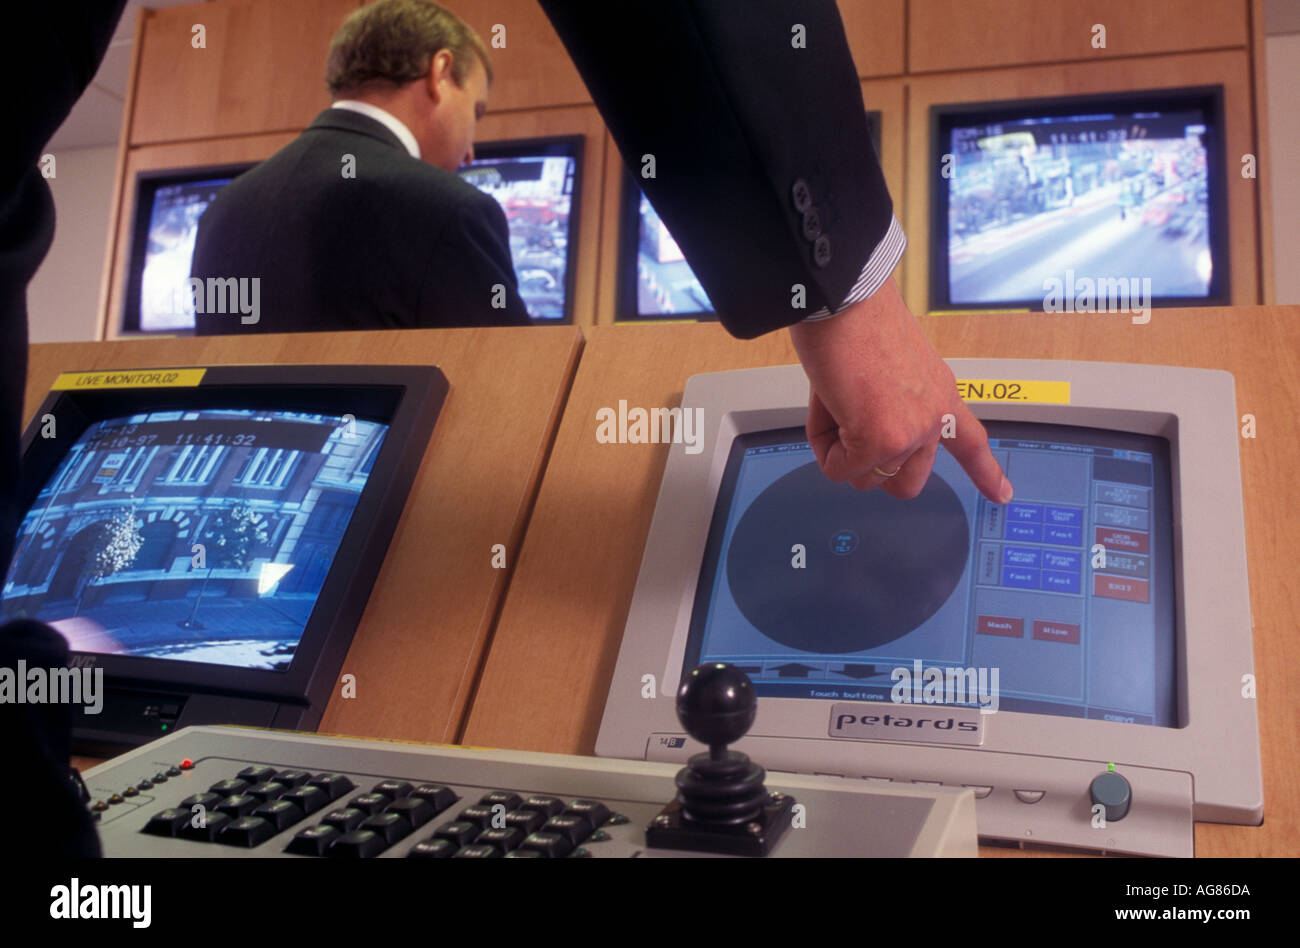 TV screens and security operators at a cctv suite in Hackney, London, UK. - Stock Image